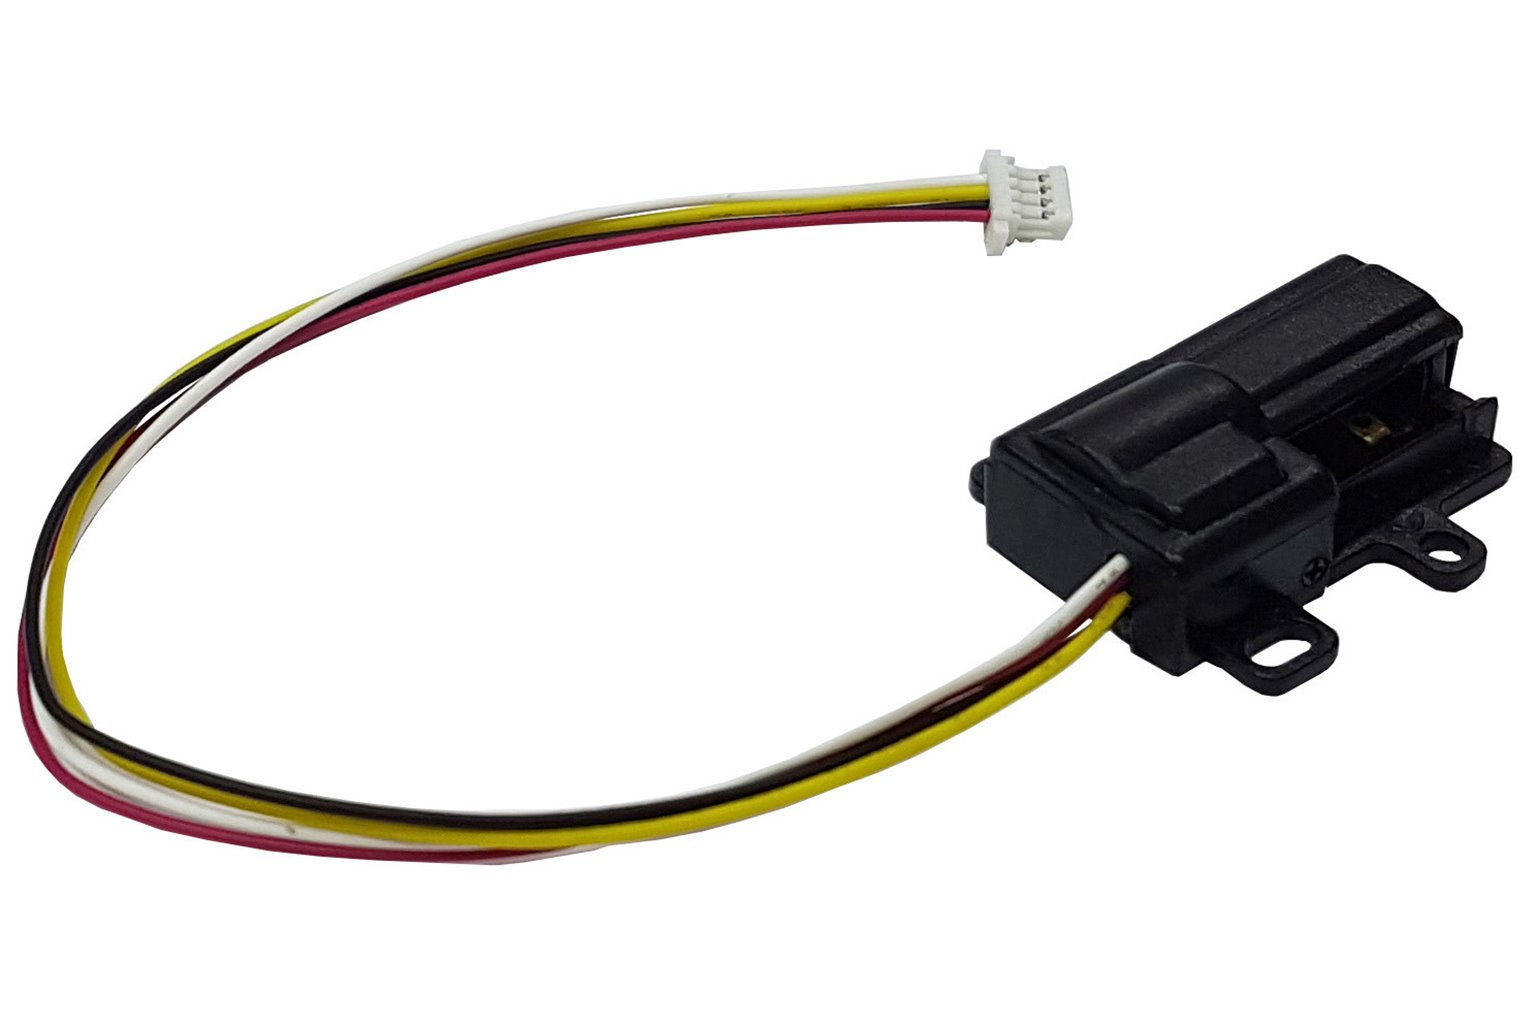 Cobalt SS Surface Mount Point Motors with Controllers and Accessories (12 Pack)